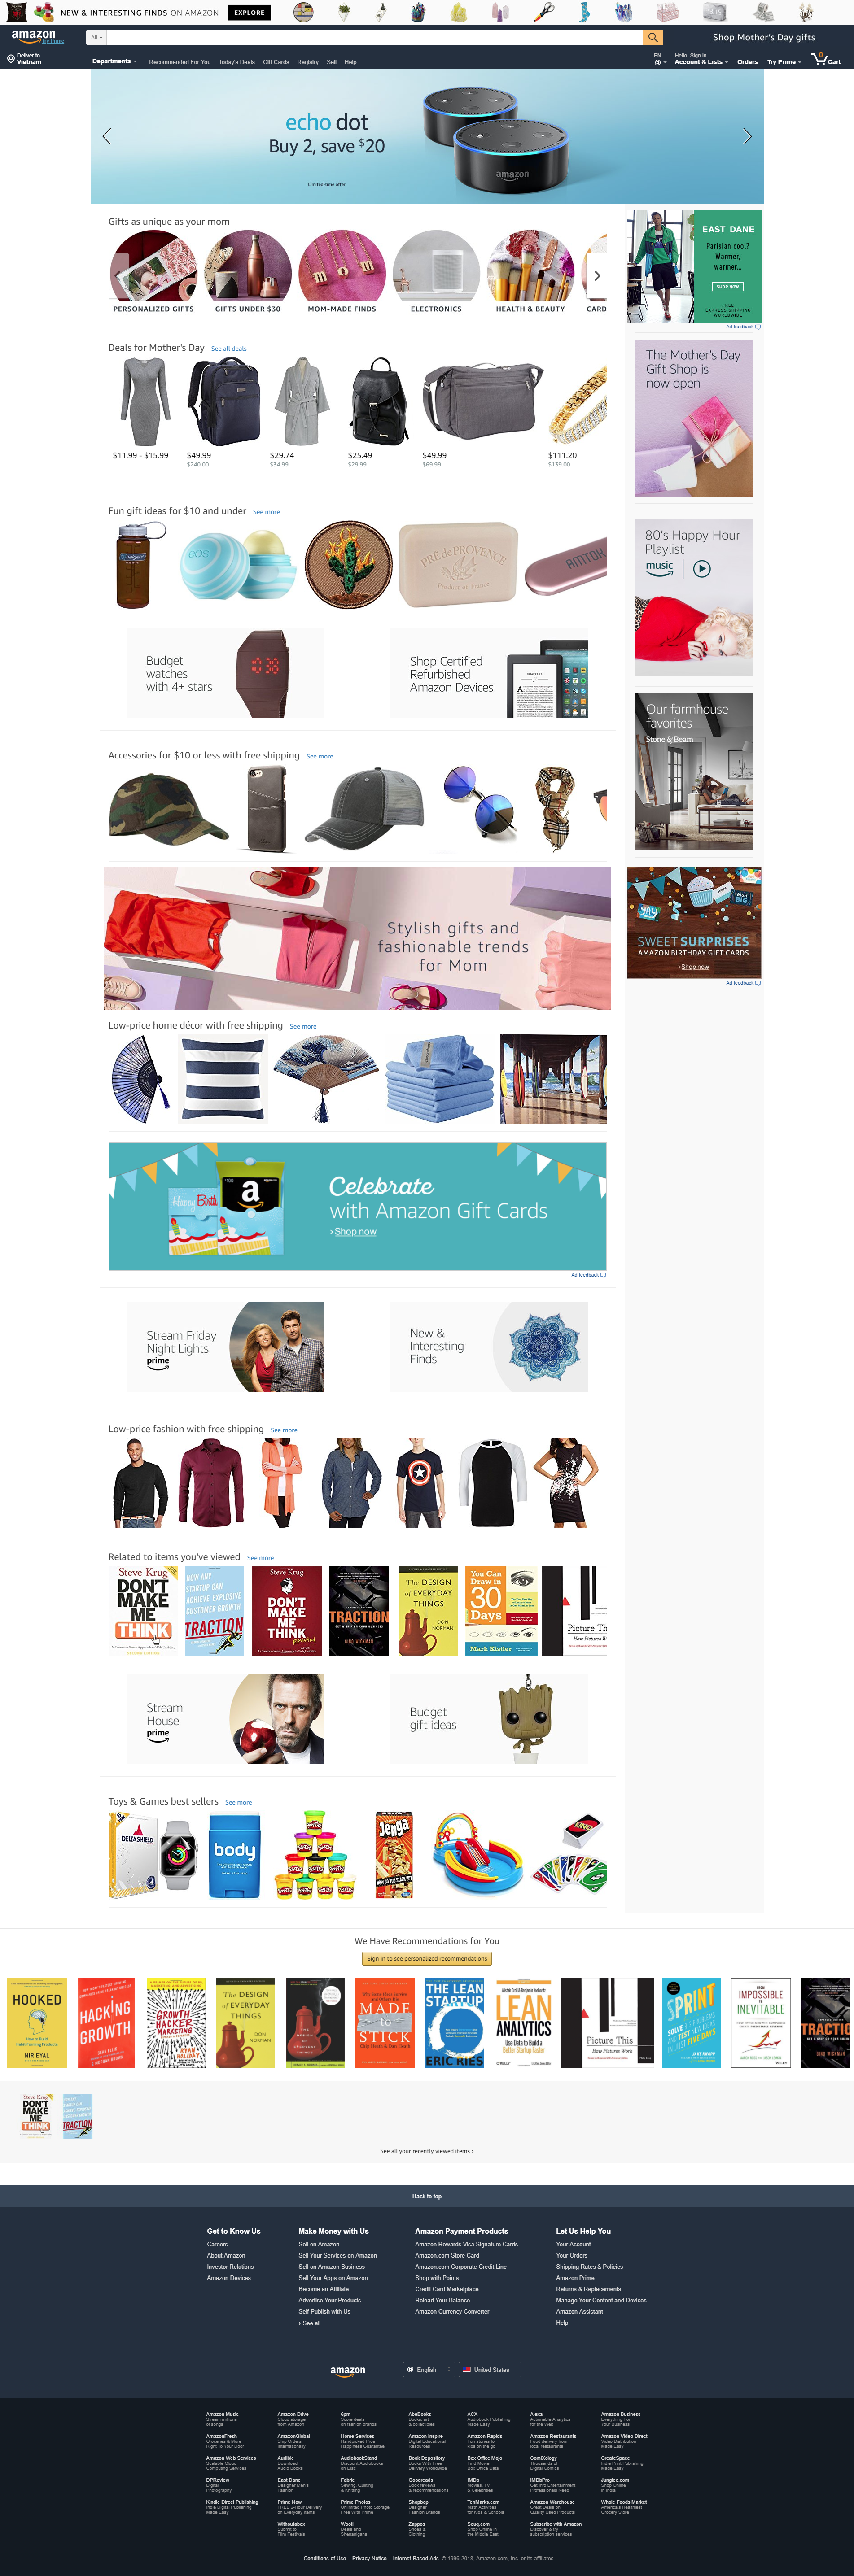 homepage - most important page of e-commerce website